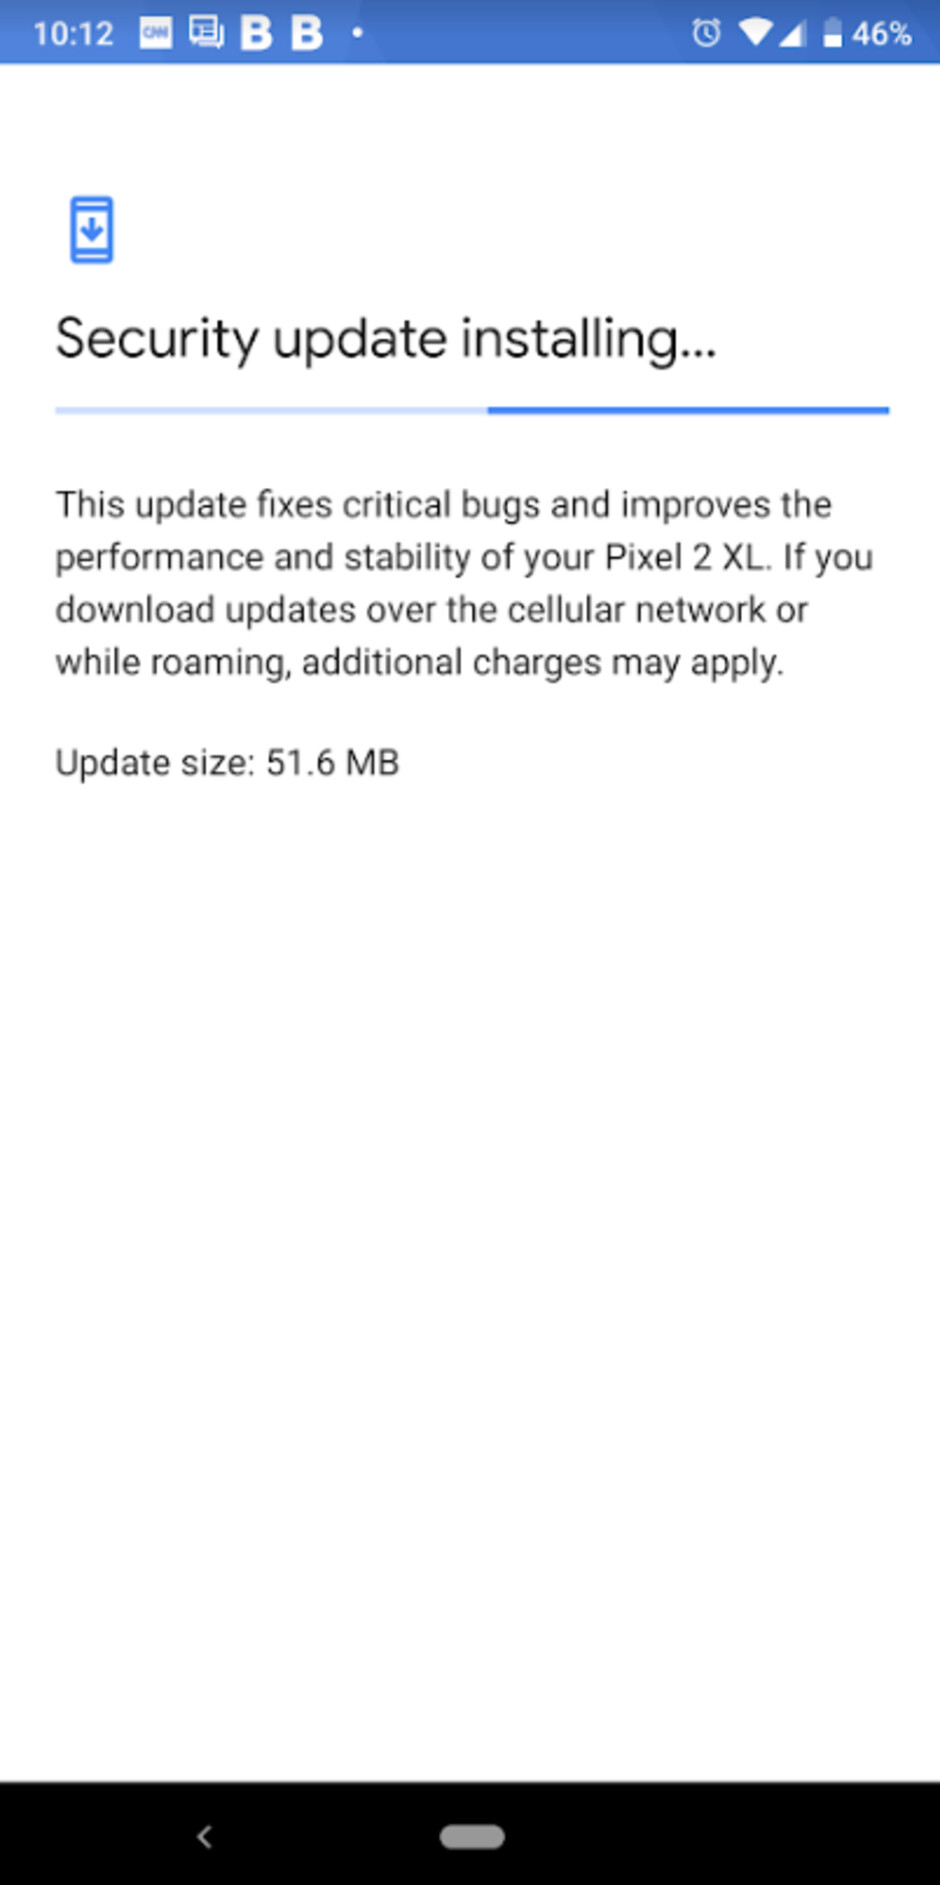 The January update is being sent out to Pixel handsets - January update fixes some audio issues on the Pixel 3, Pixel 3 XL